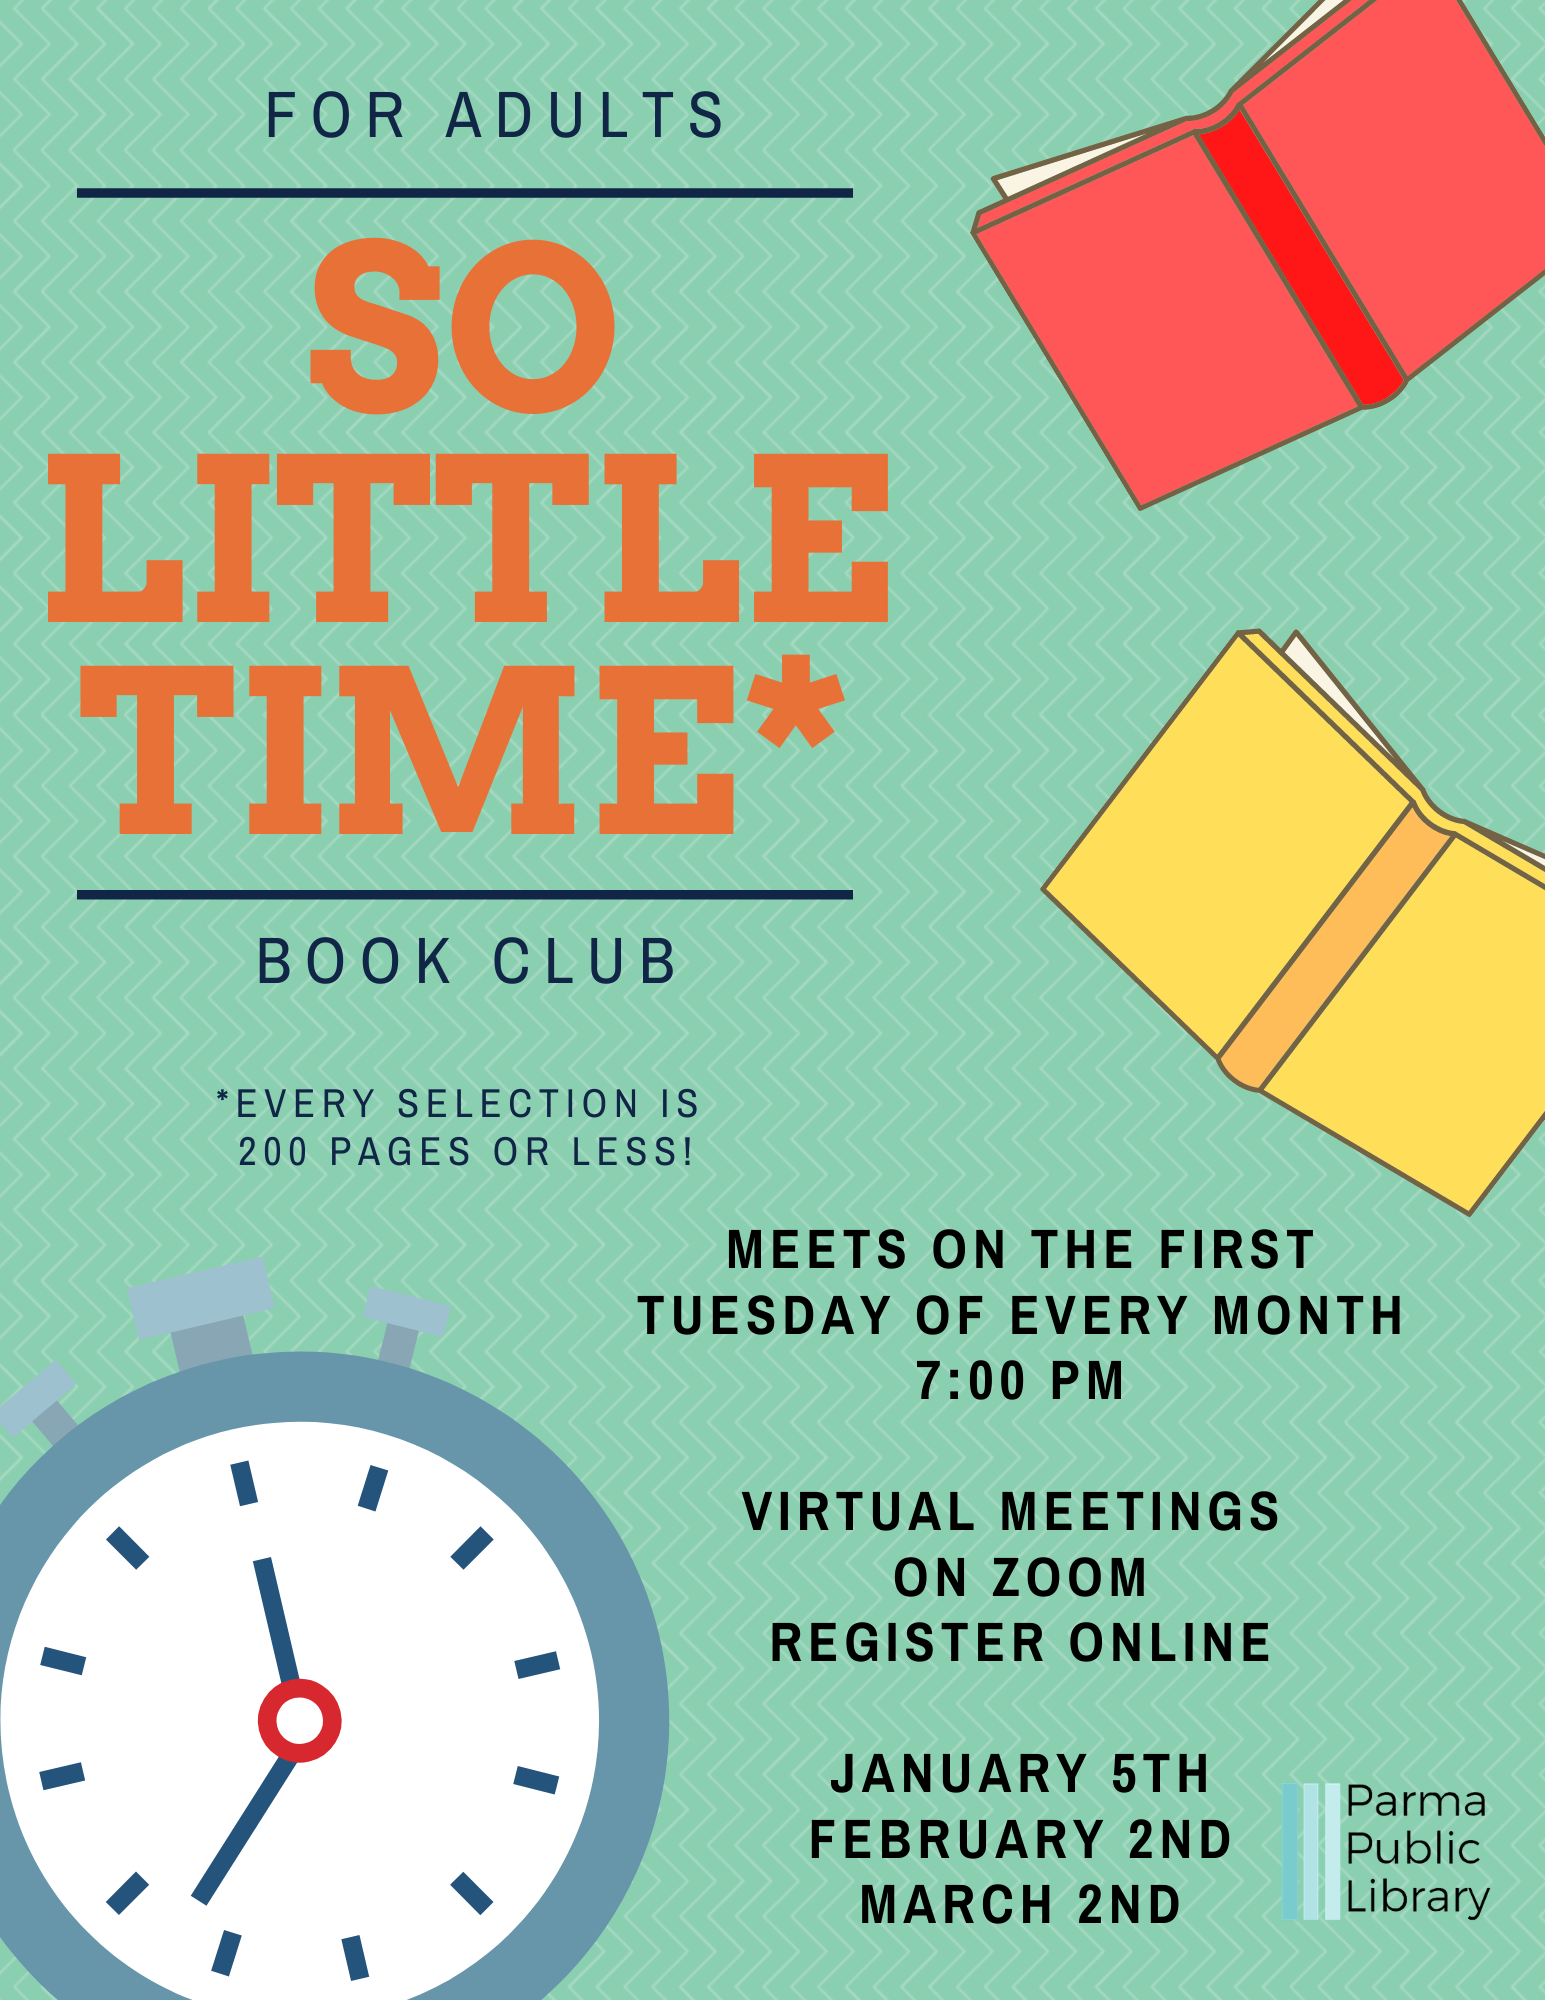 So Little Time Book Club (The Ocean at the End of the Lane)